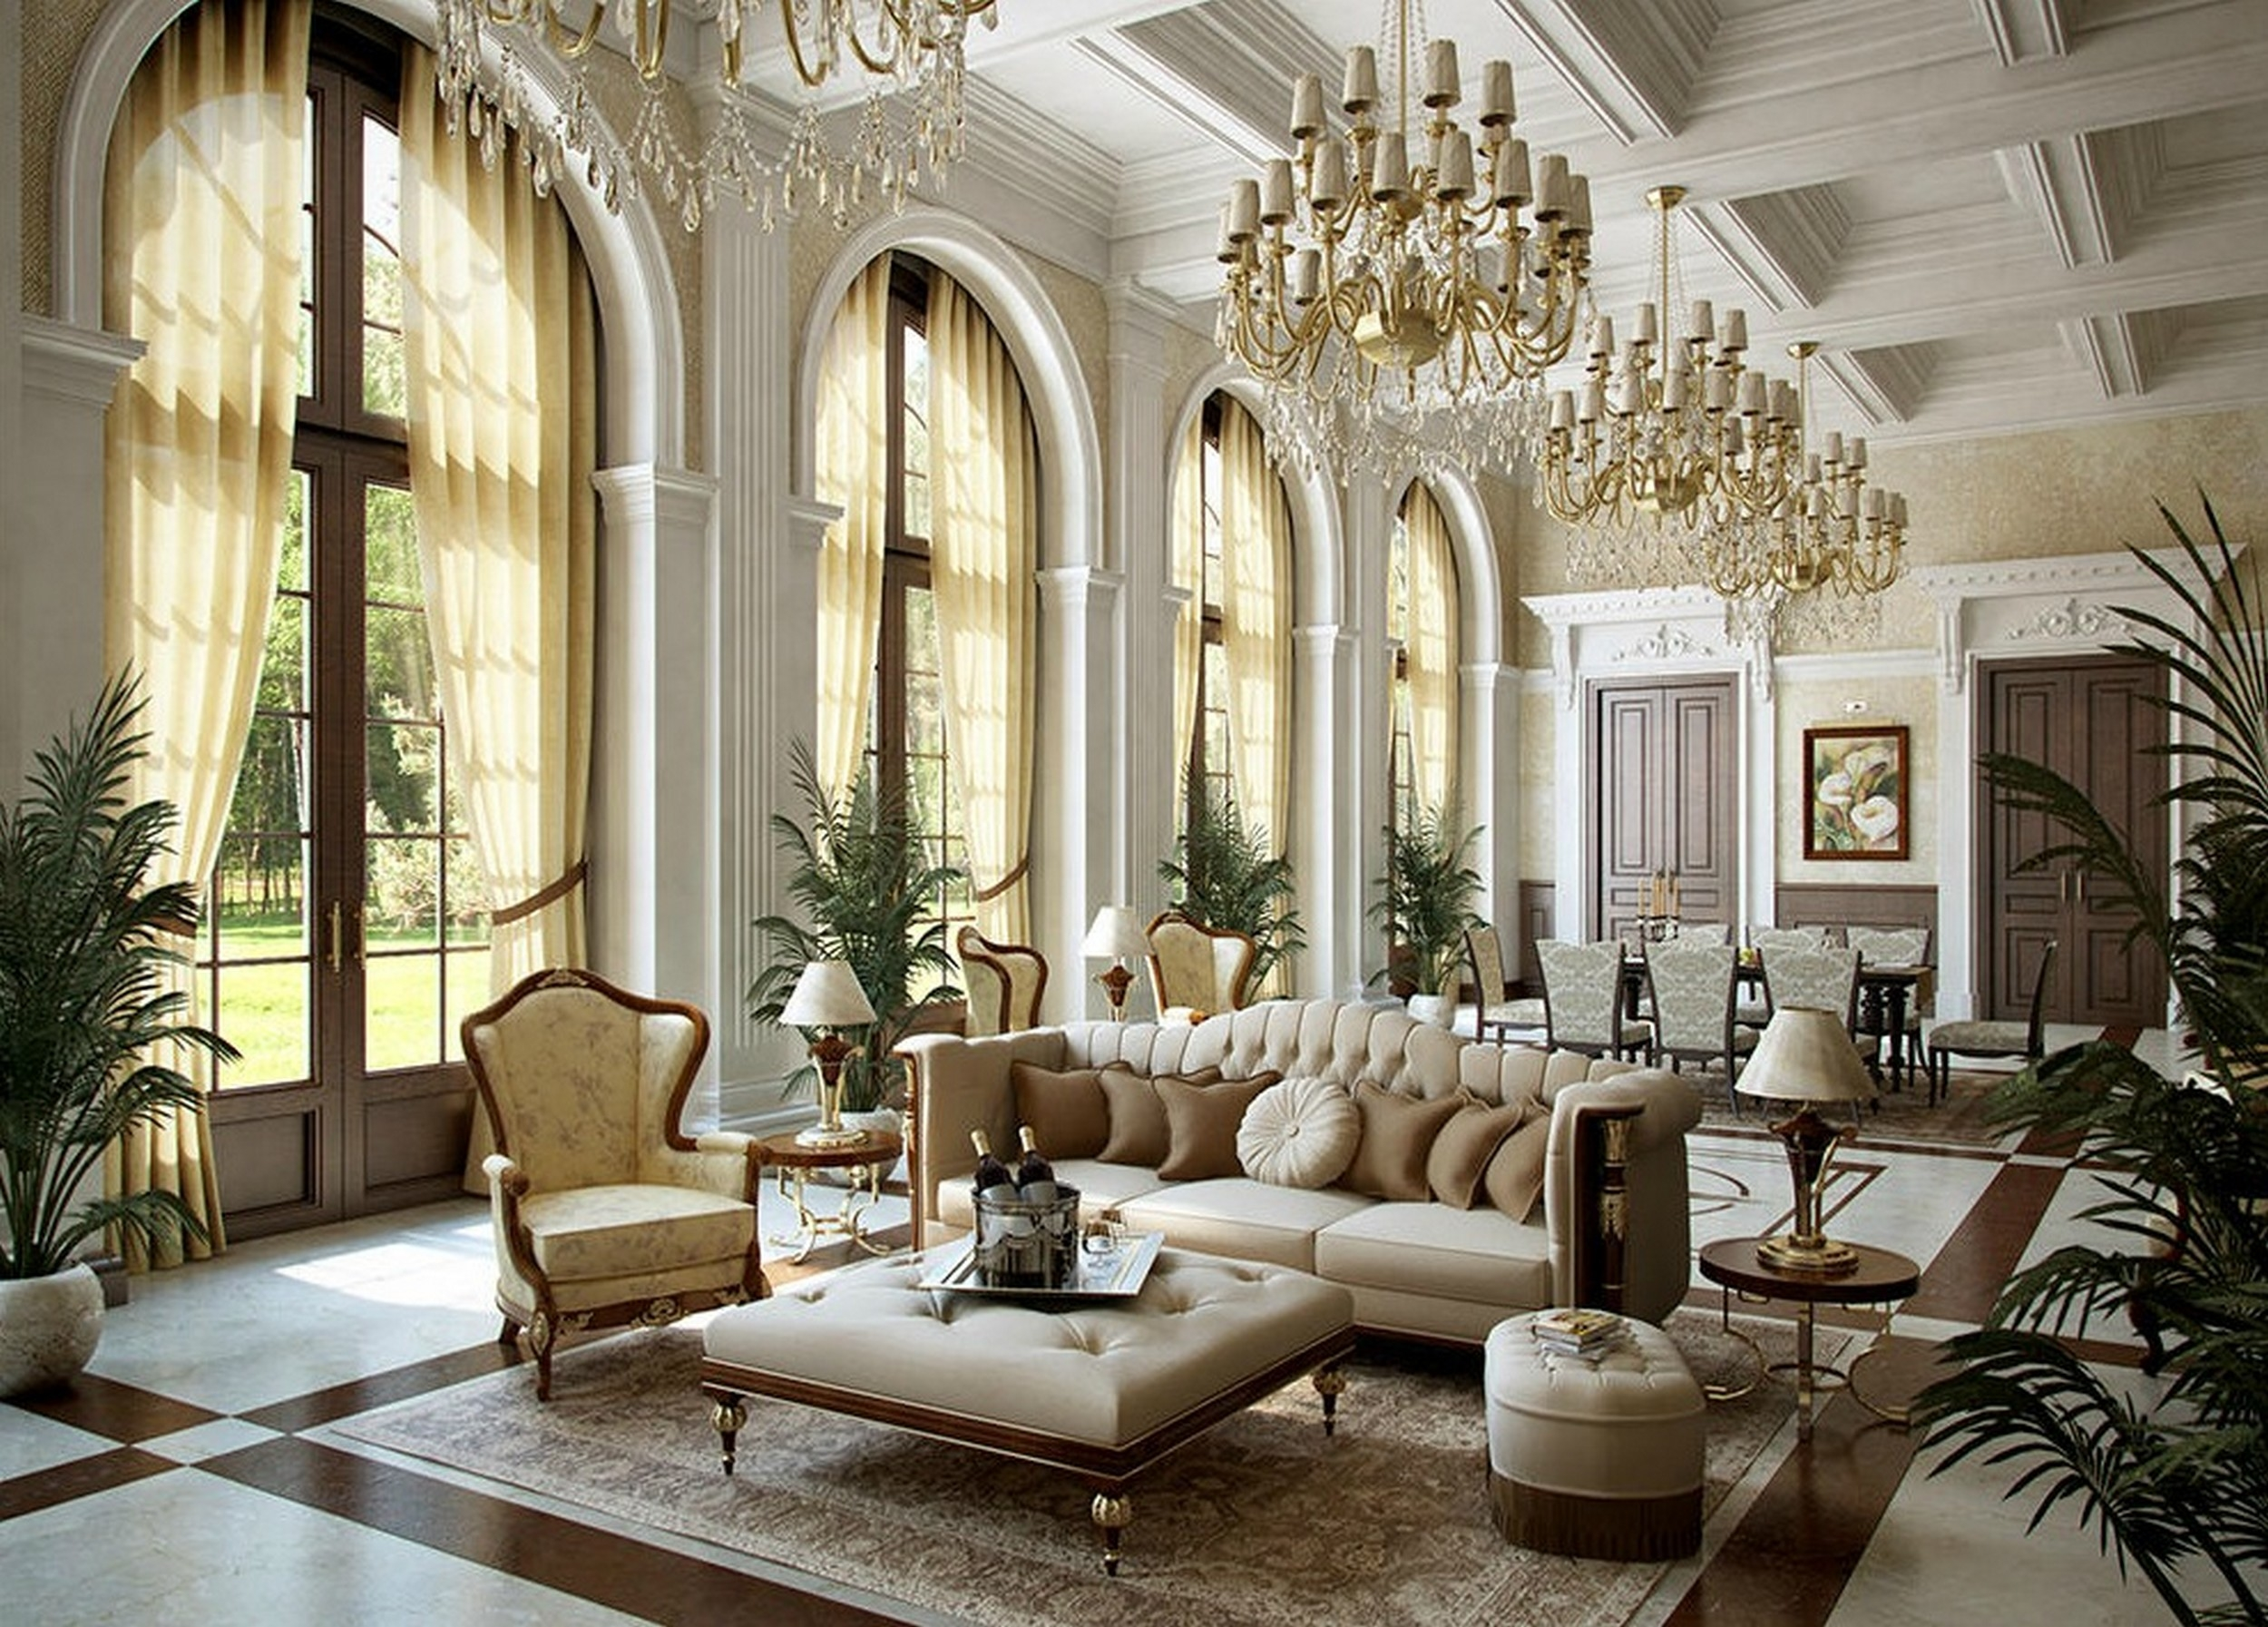 28 Really Great Room Ideas For Which Inspire You ... on Room Ideas  id=80535